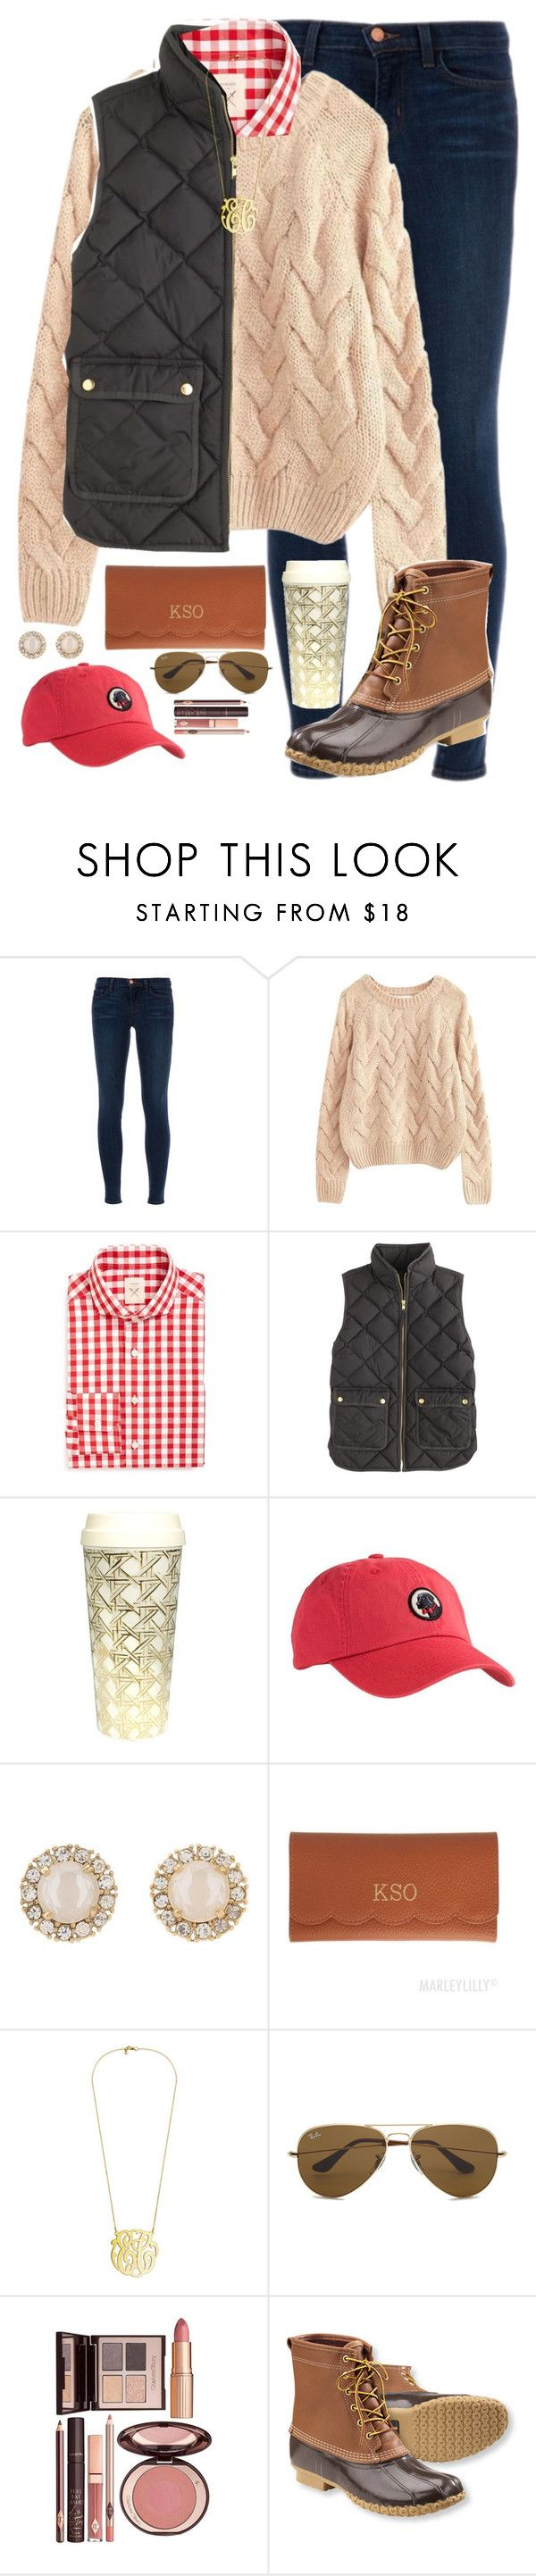 """""""Day 3 - going on a hayride"""" by pnw-prep ❤ liked on Polyvore featuring J Brand, Strong Suit, J.Crew, Kate Spade, Southern Proper, Ray-Ban, Charlotte Tilbury, L.L.Bean and miasfallcontest"""